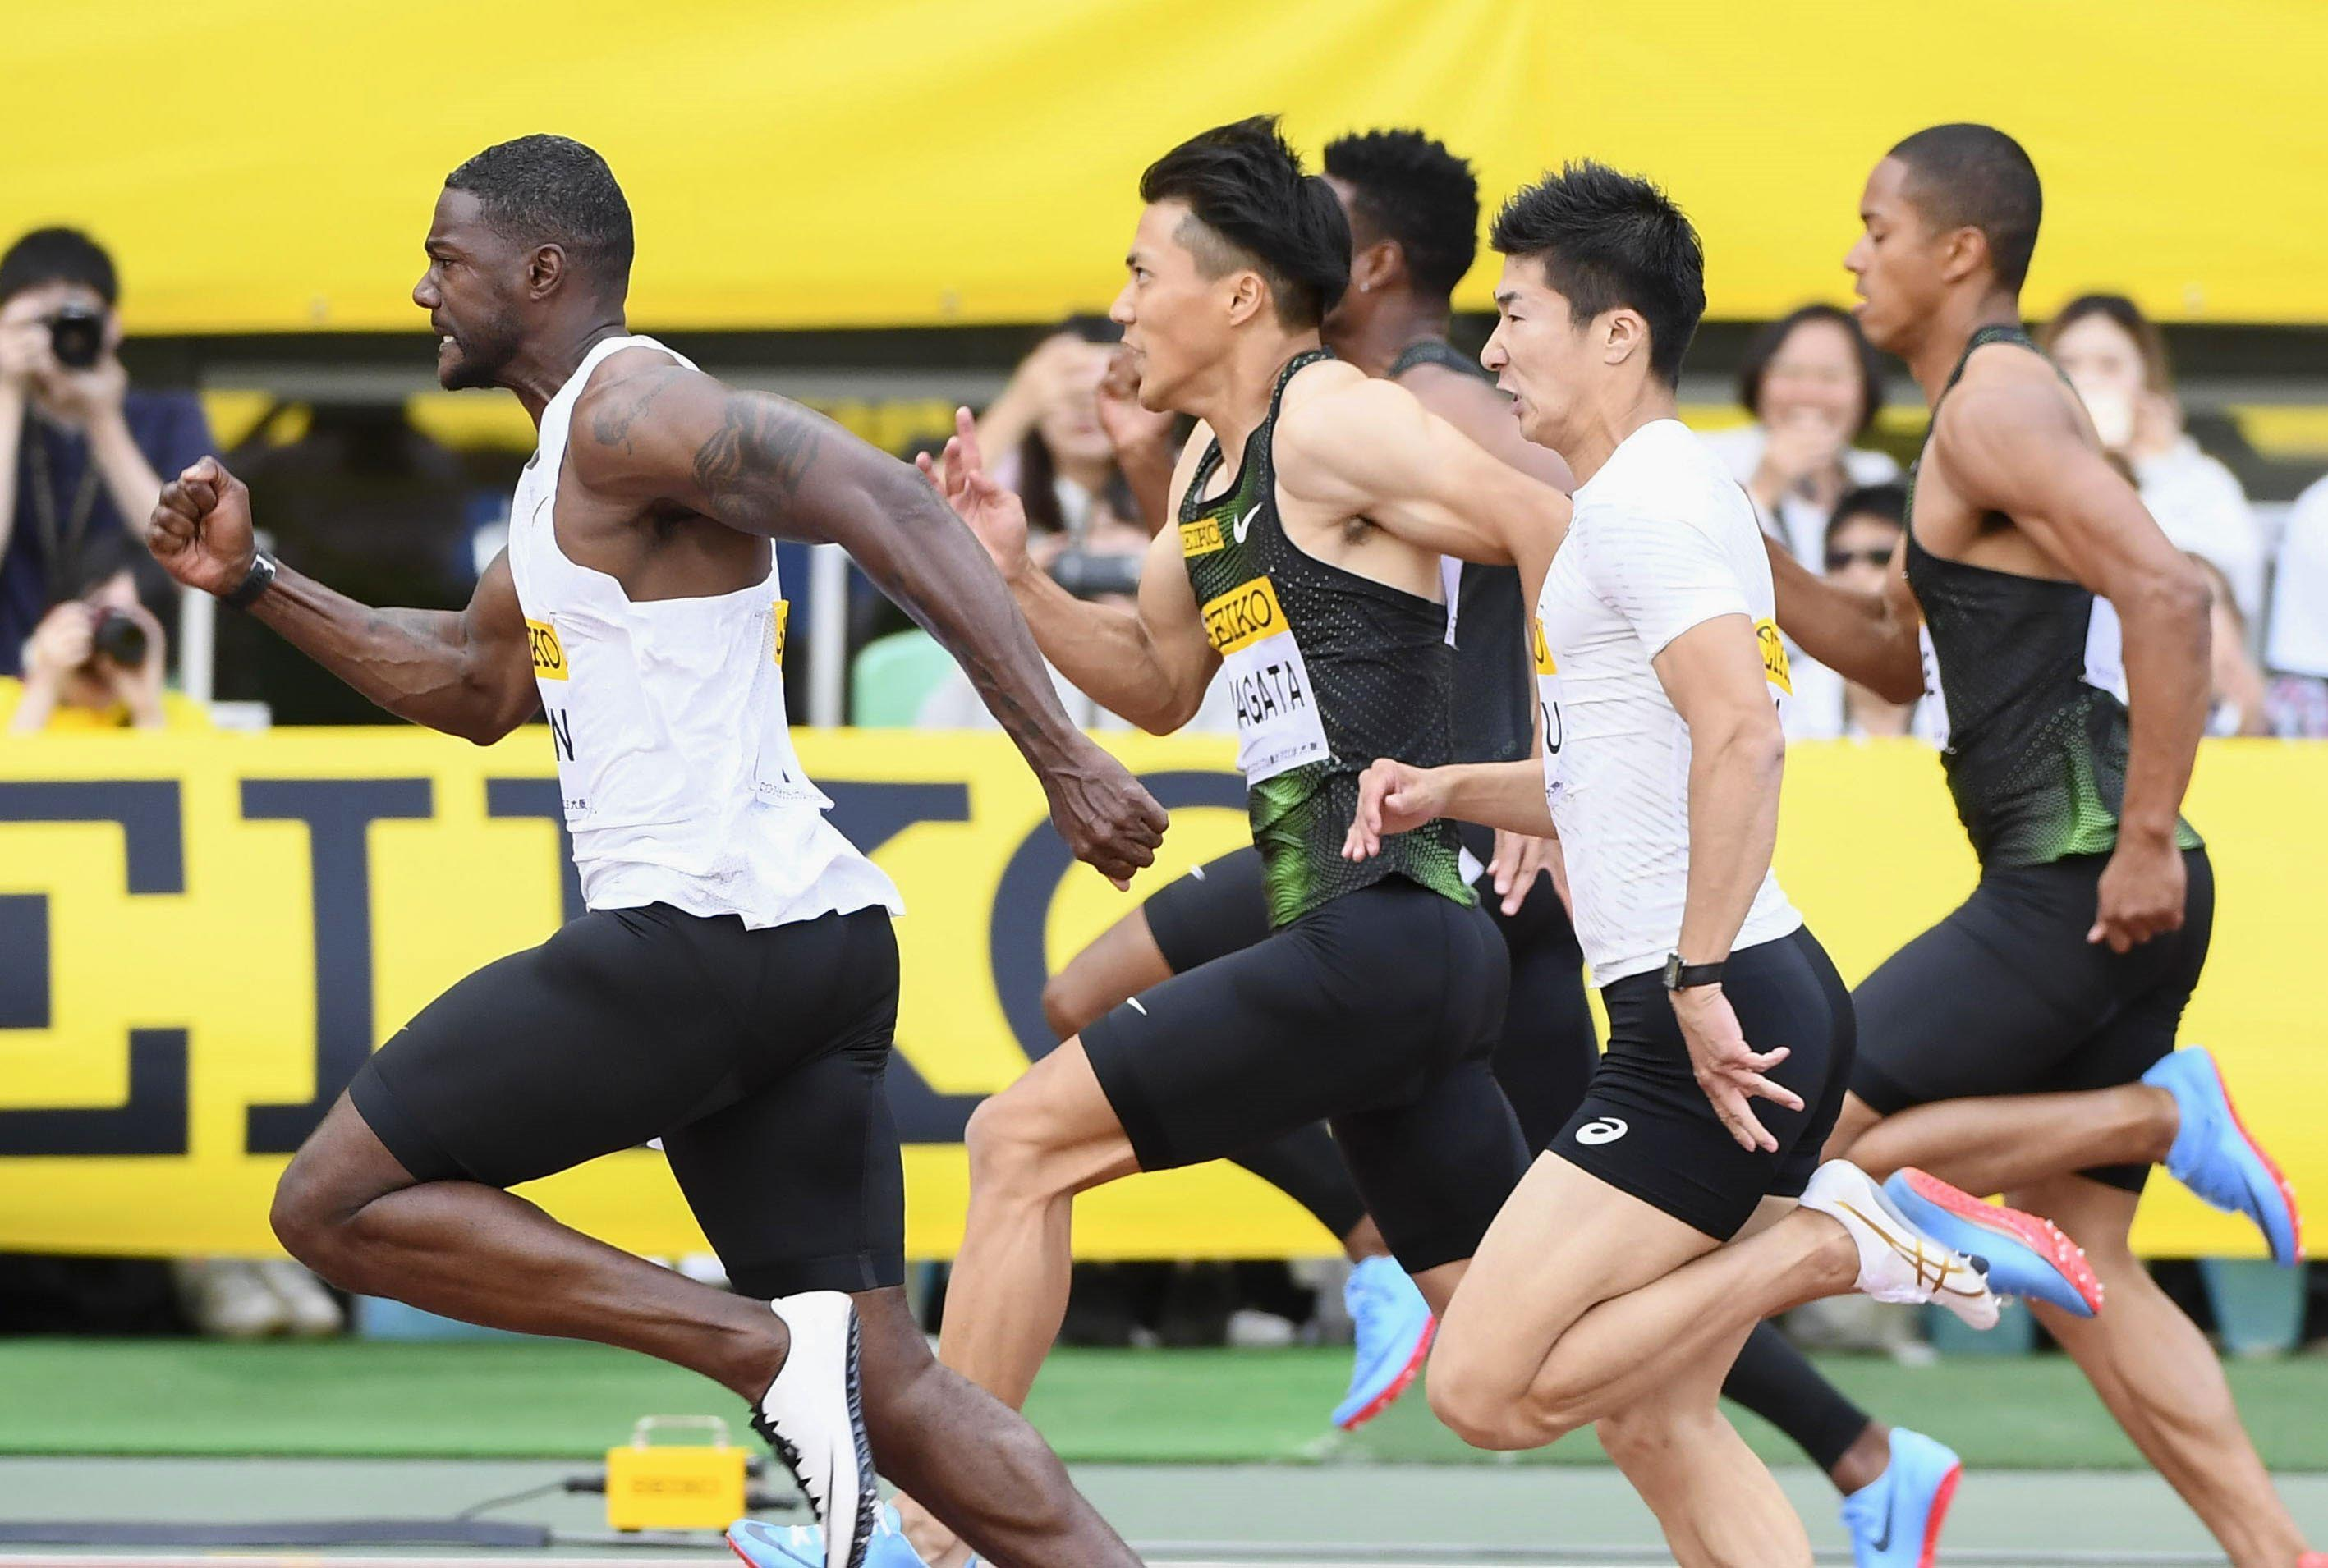 Justin Gatlin (left) of the United States competes on his way to winning the men's 100 meters at the Golden Grand Prix track and field event in Osaka, western Japan on Sunday. Gatlin clocked 10.06 seconds to win the 100 meters, ahead of Japan's Ryota Yamagata center.